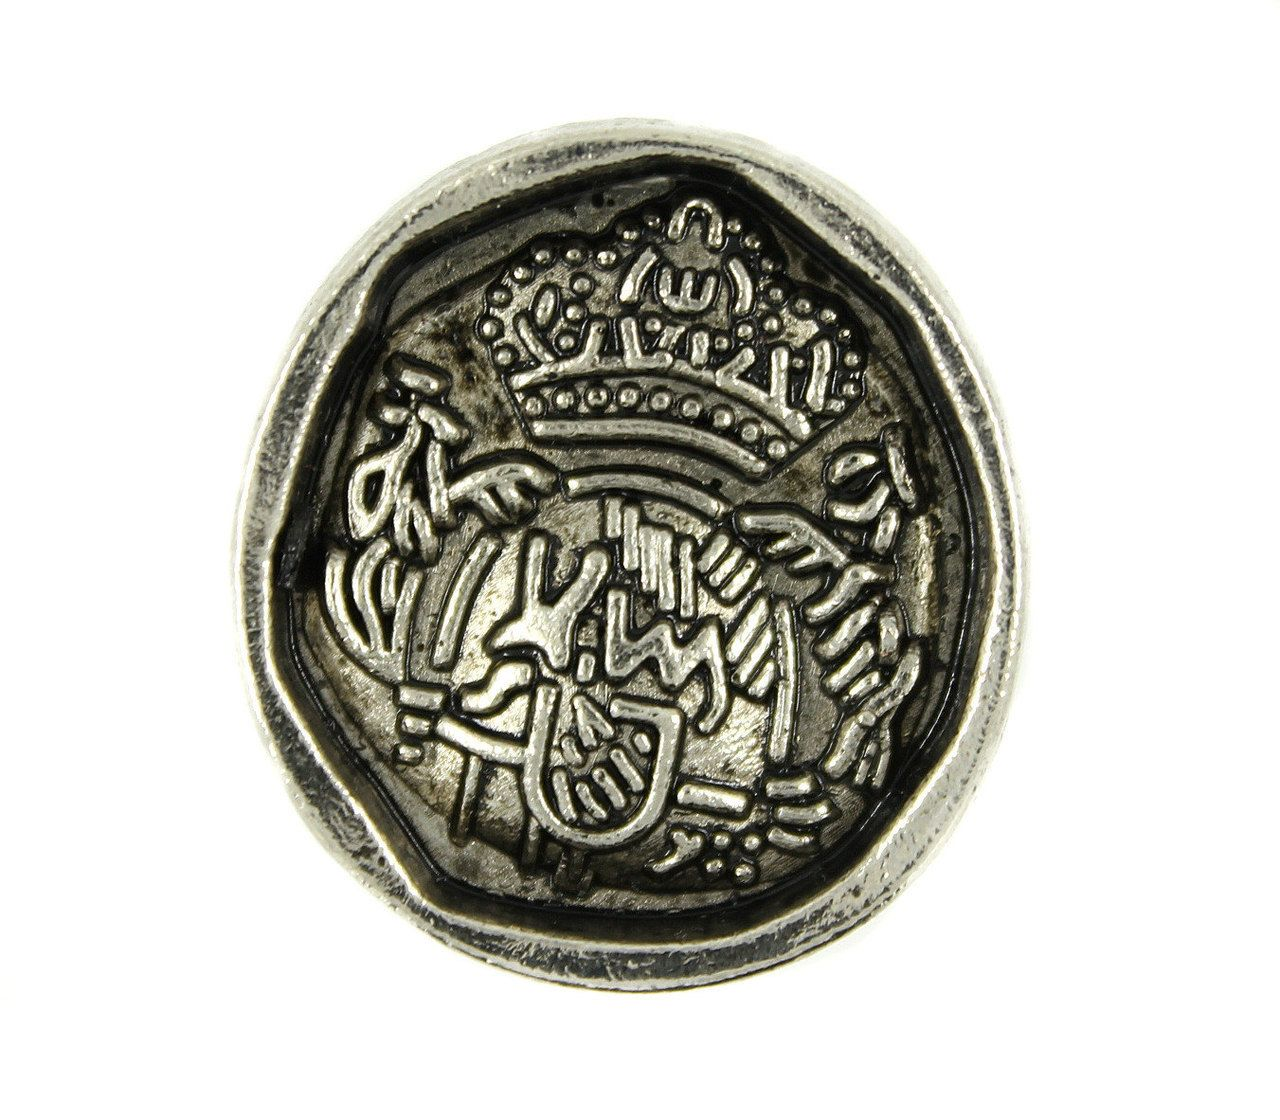 Irregular Round Oracle Emblem Retro Silver Metal Shank Buttons - 31mm - 1 1/4 inch